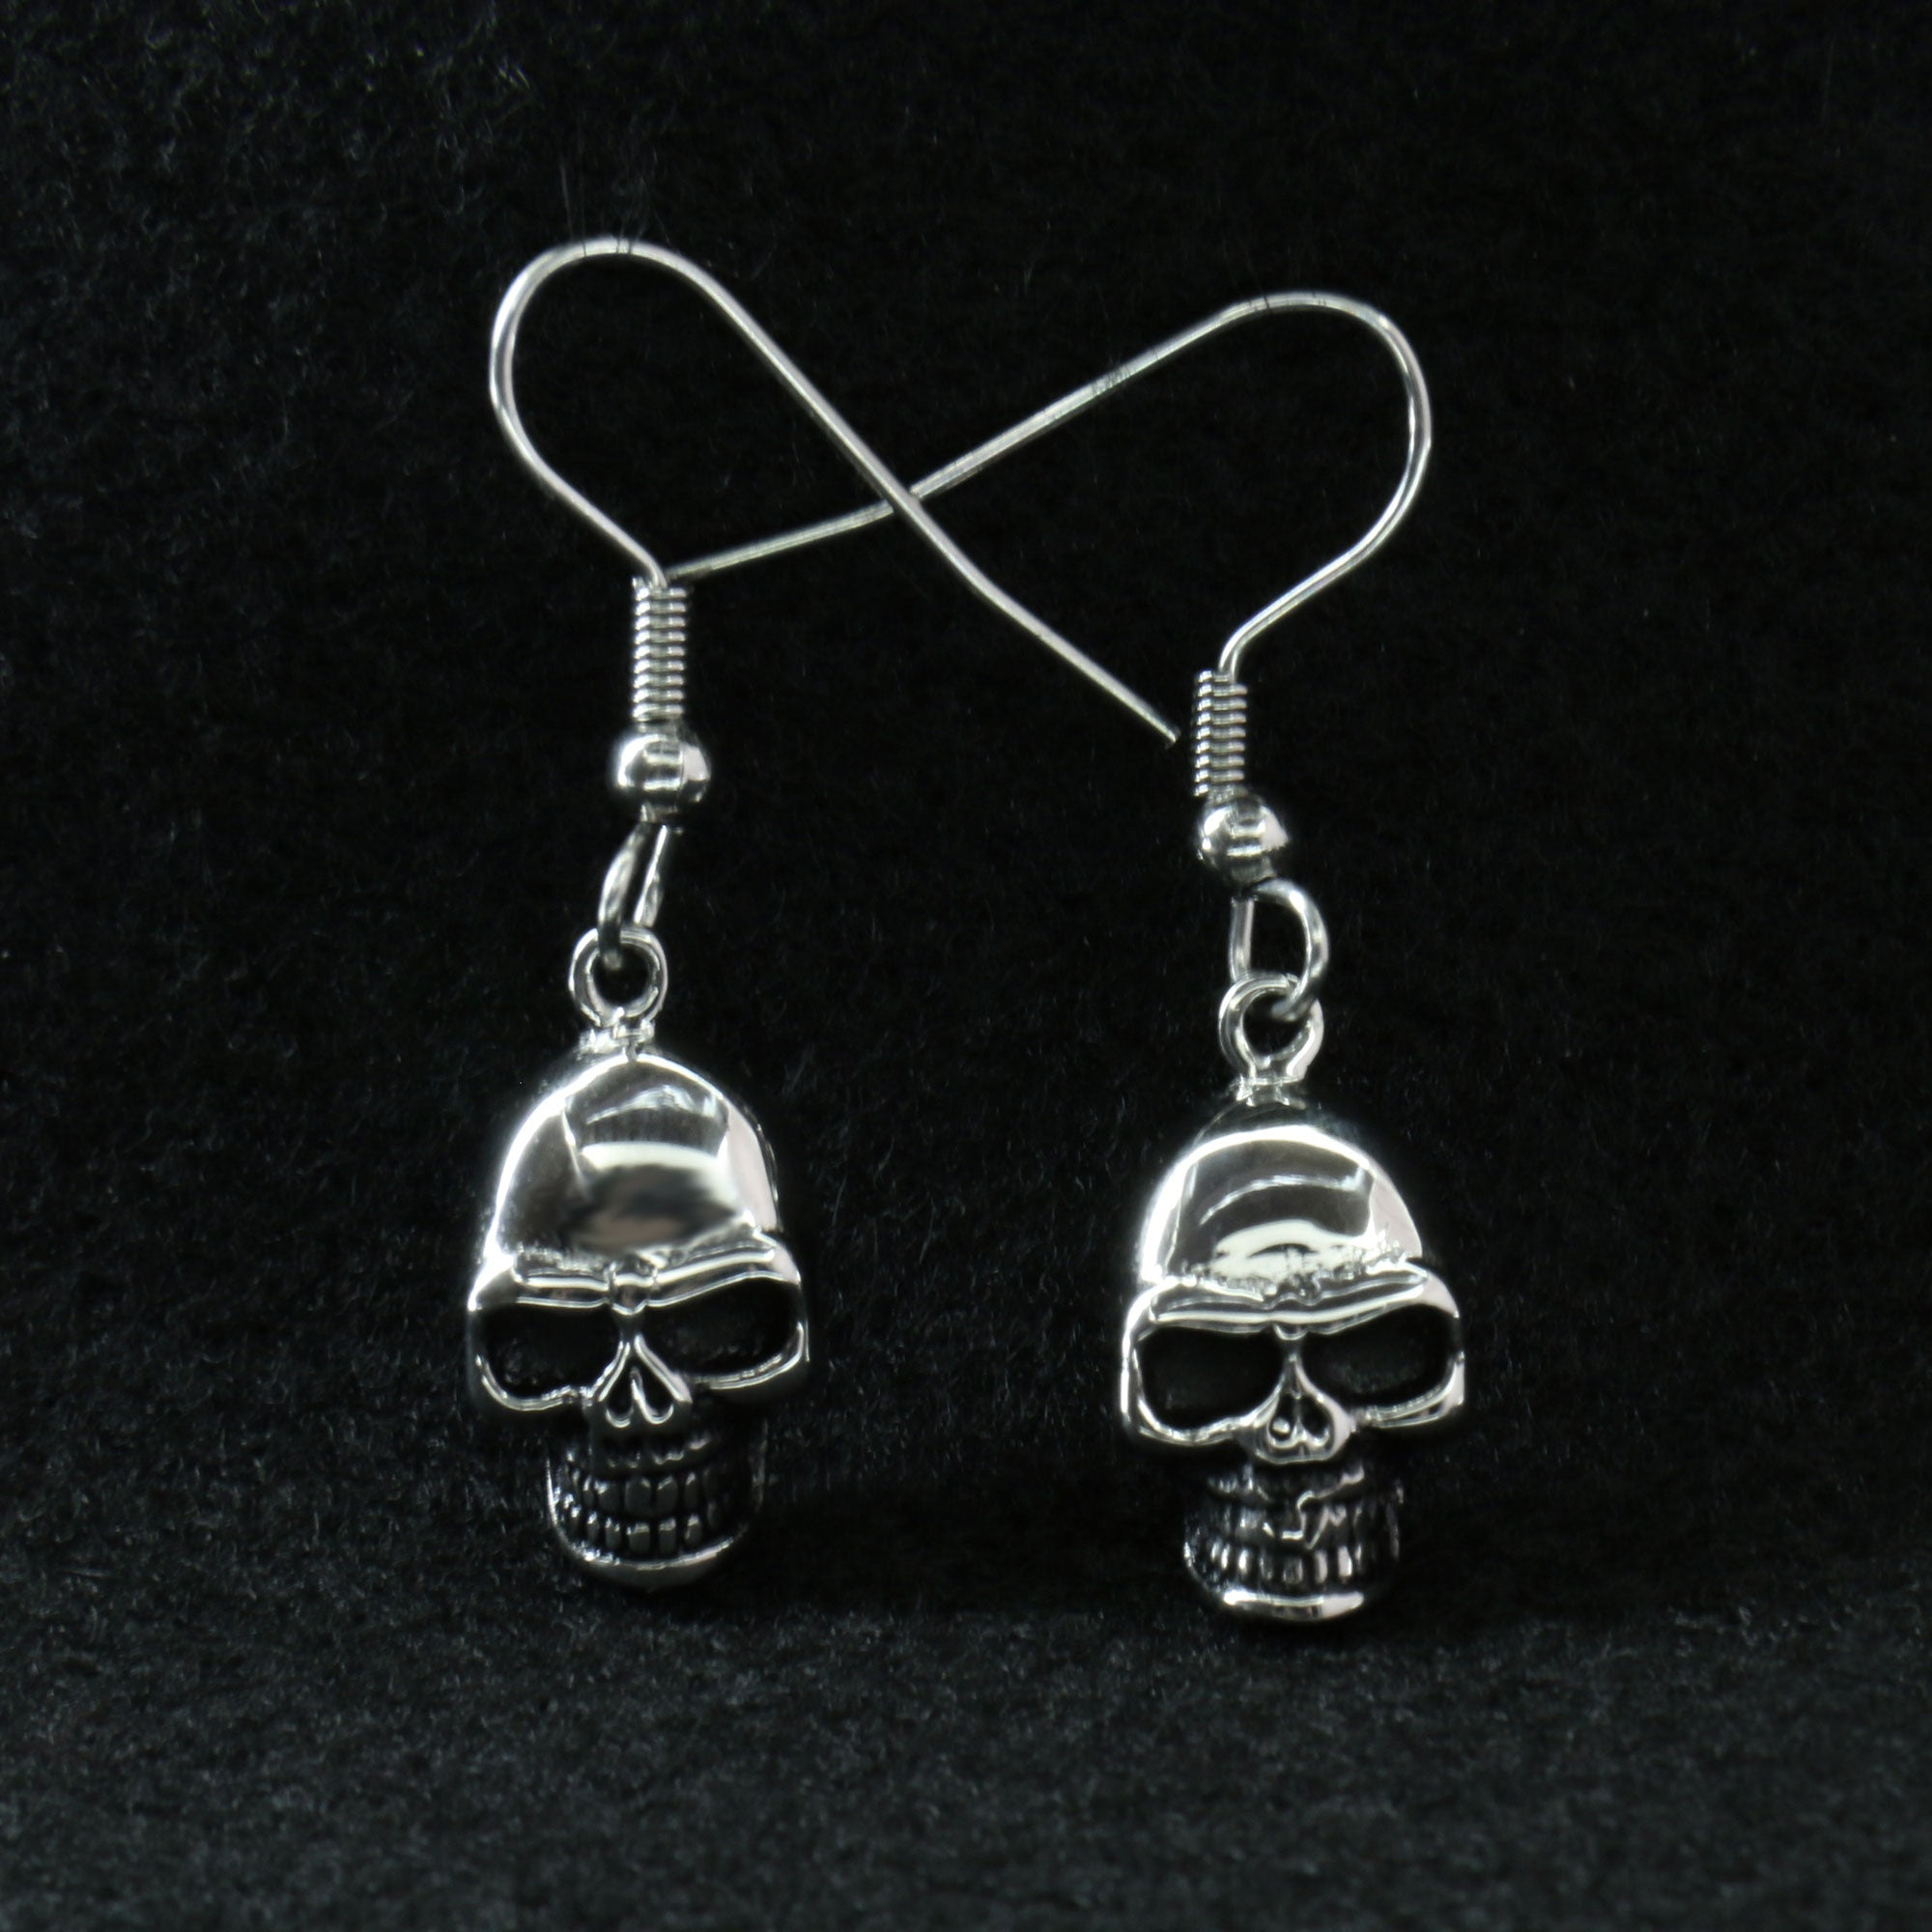 Hot Leathers Stainless Steel Skull Earrings